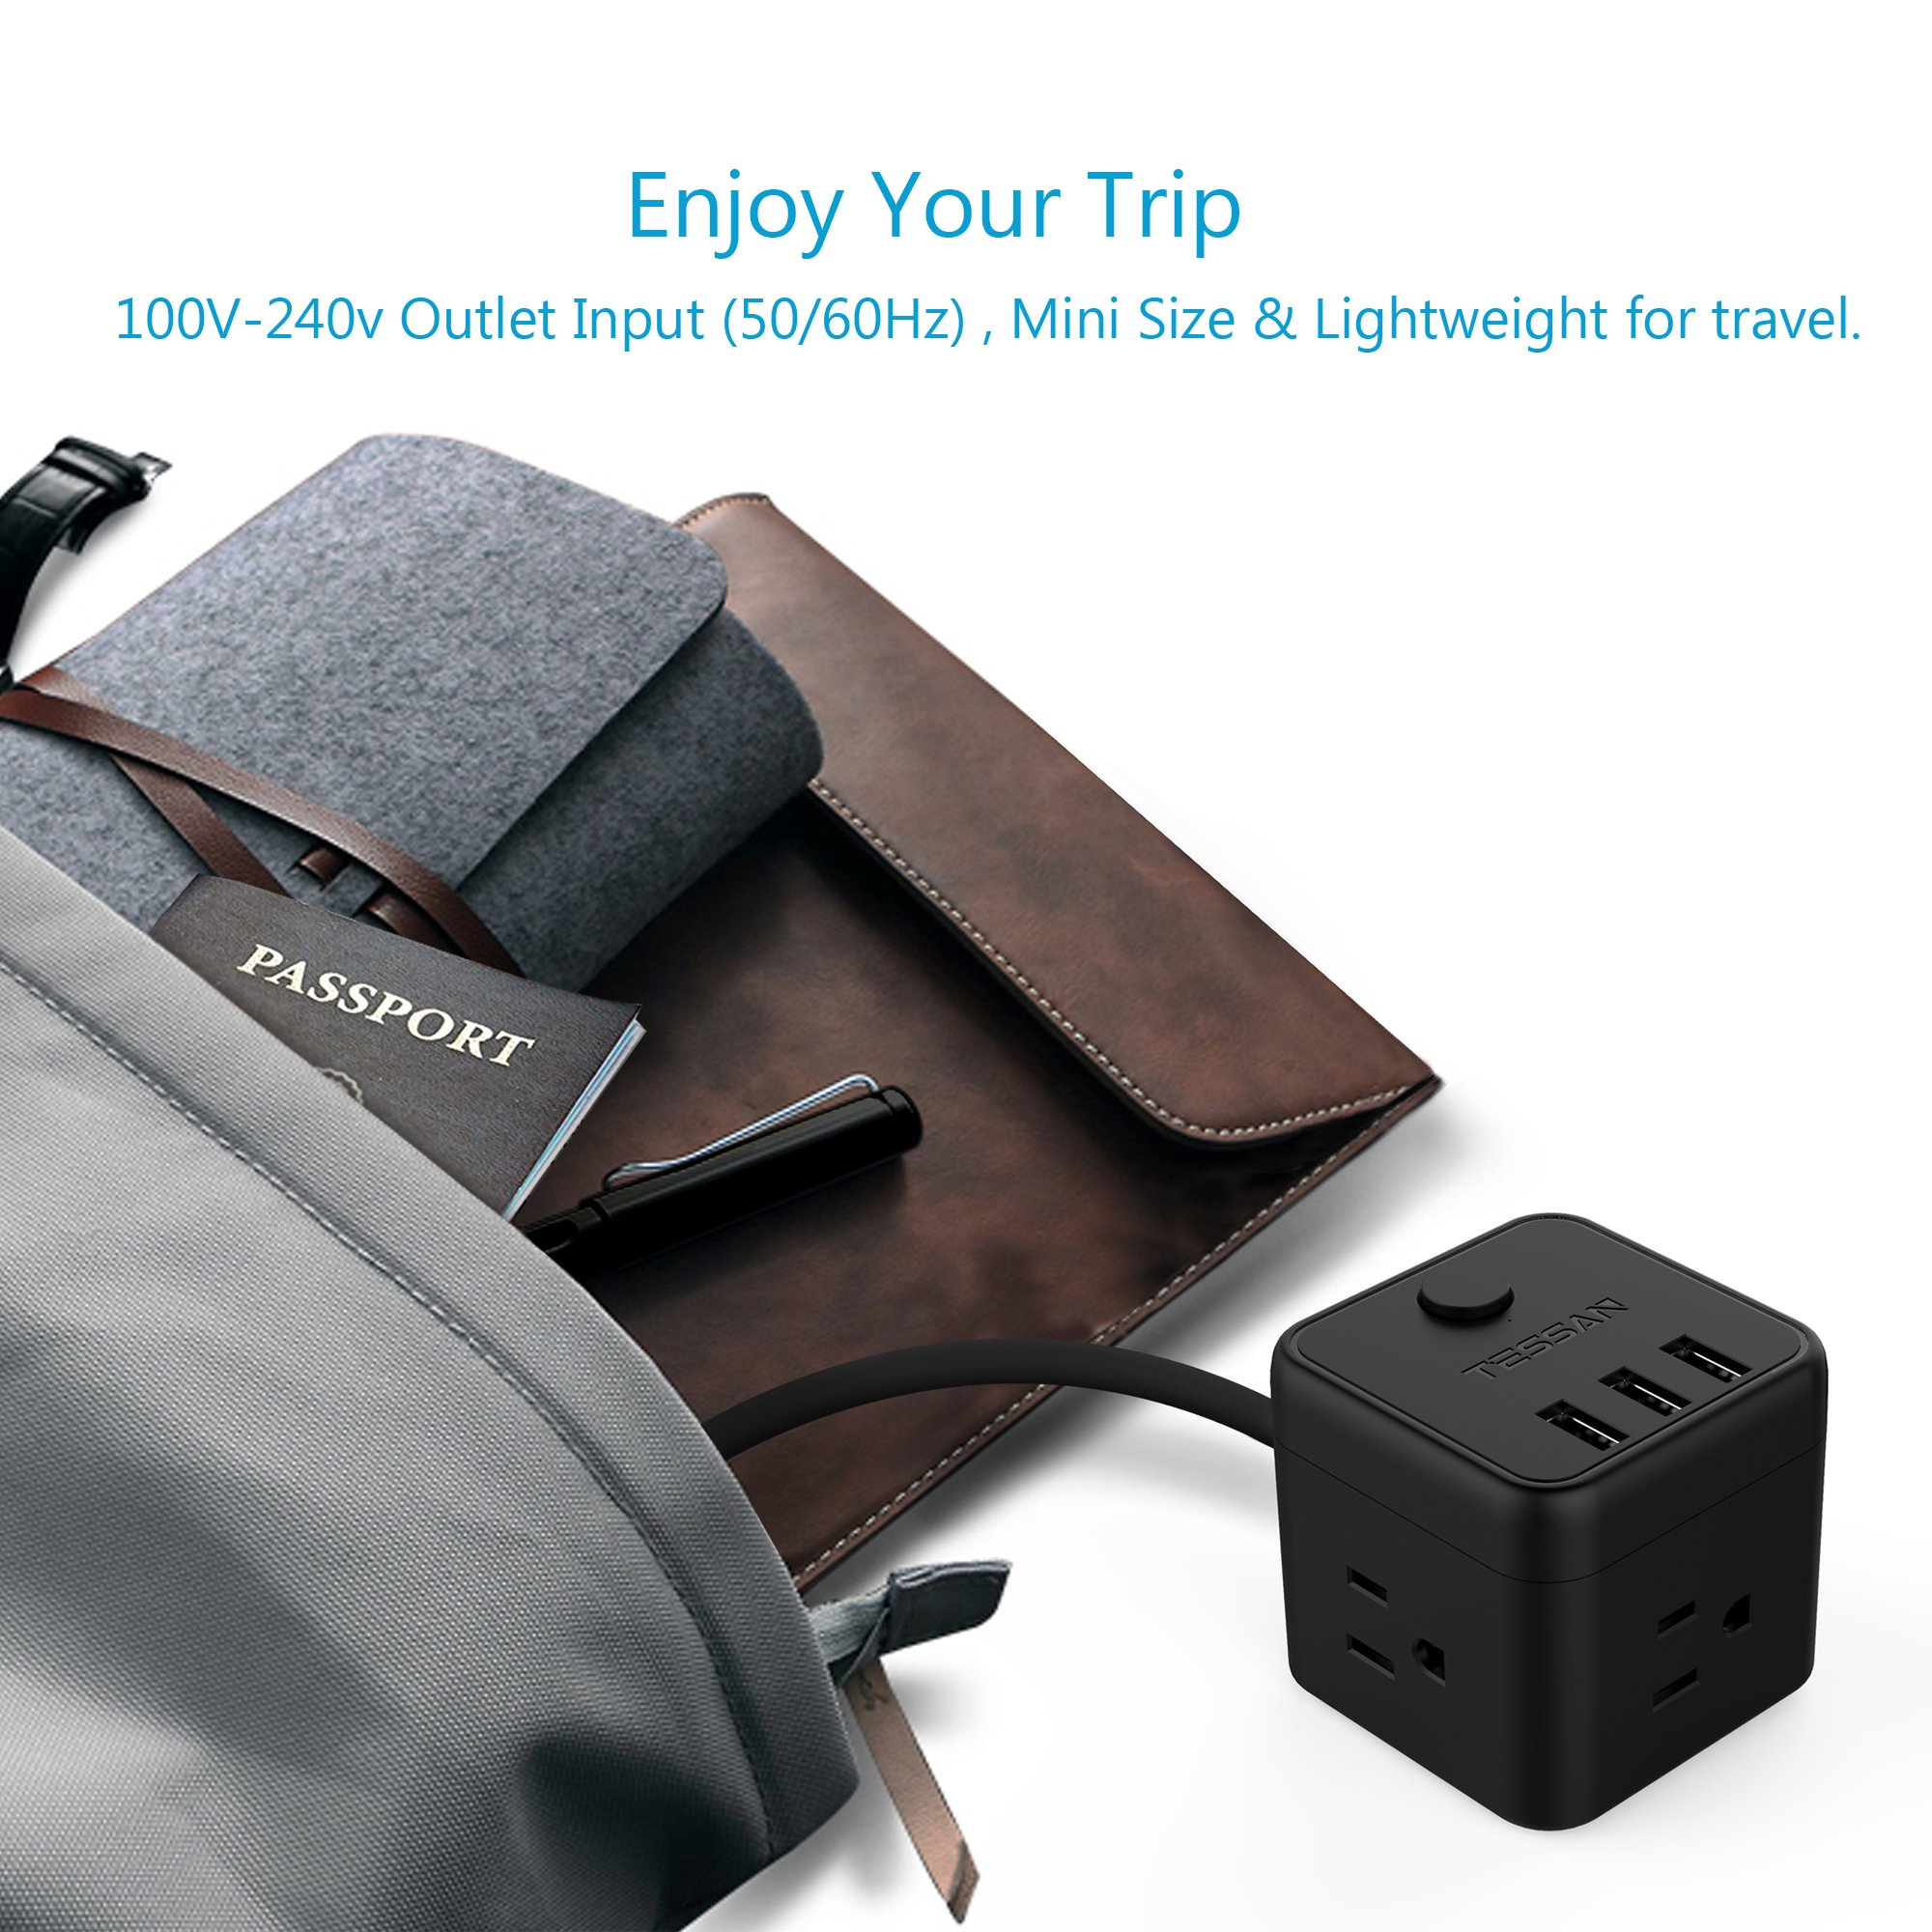 Portable Cube Power Strip with 3 USB Port & Switch Control, 3 Outlet Charging Station with 5 Ft Extension Cord for Nightstand & Desktop & Travel - Black by TESSAN (Image #7)